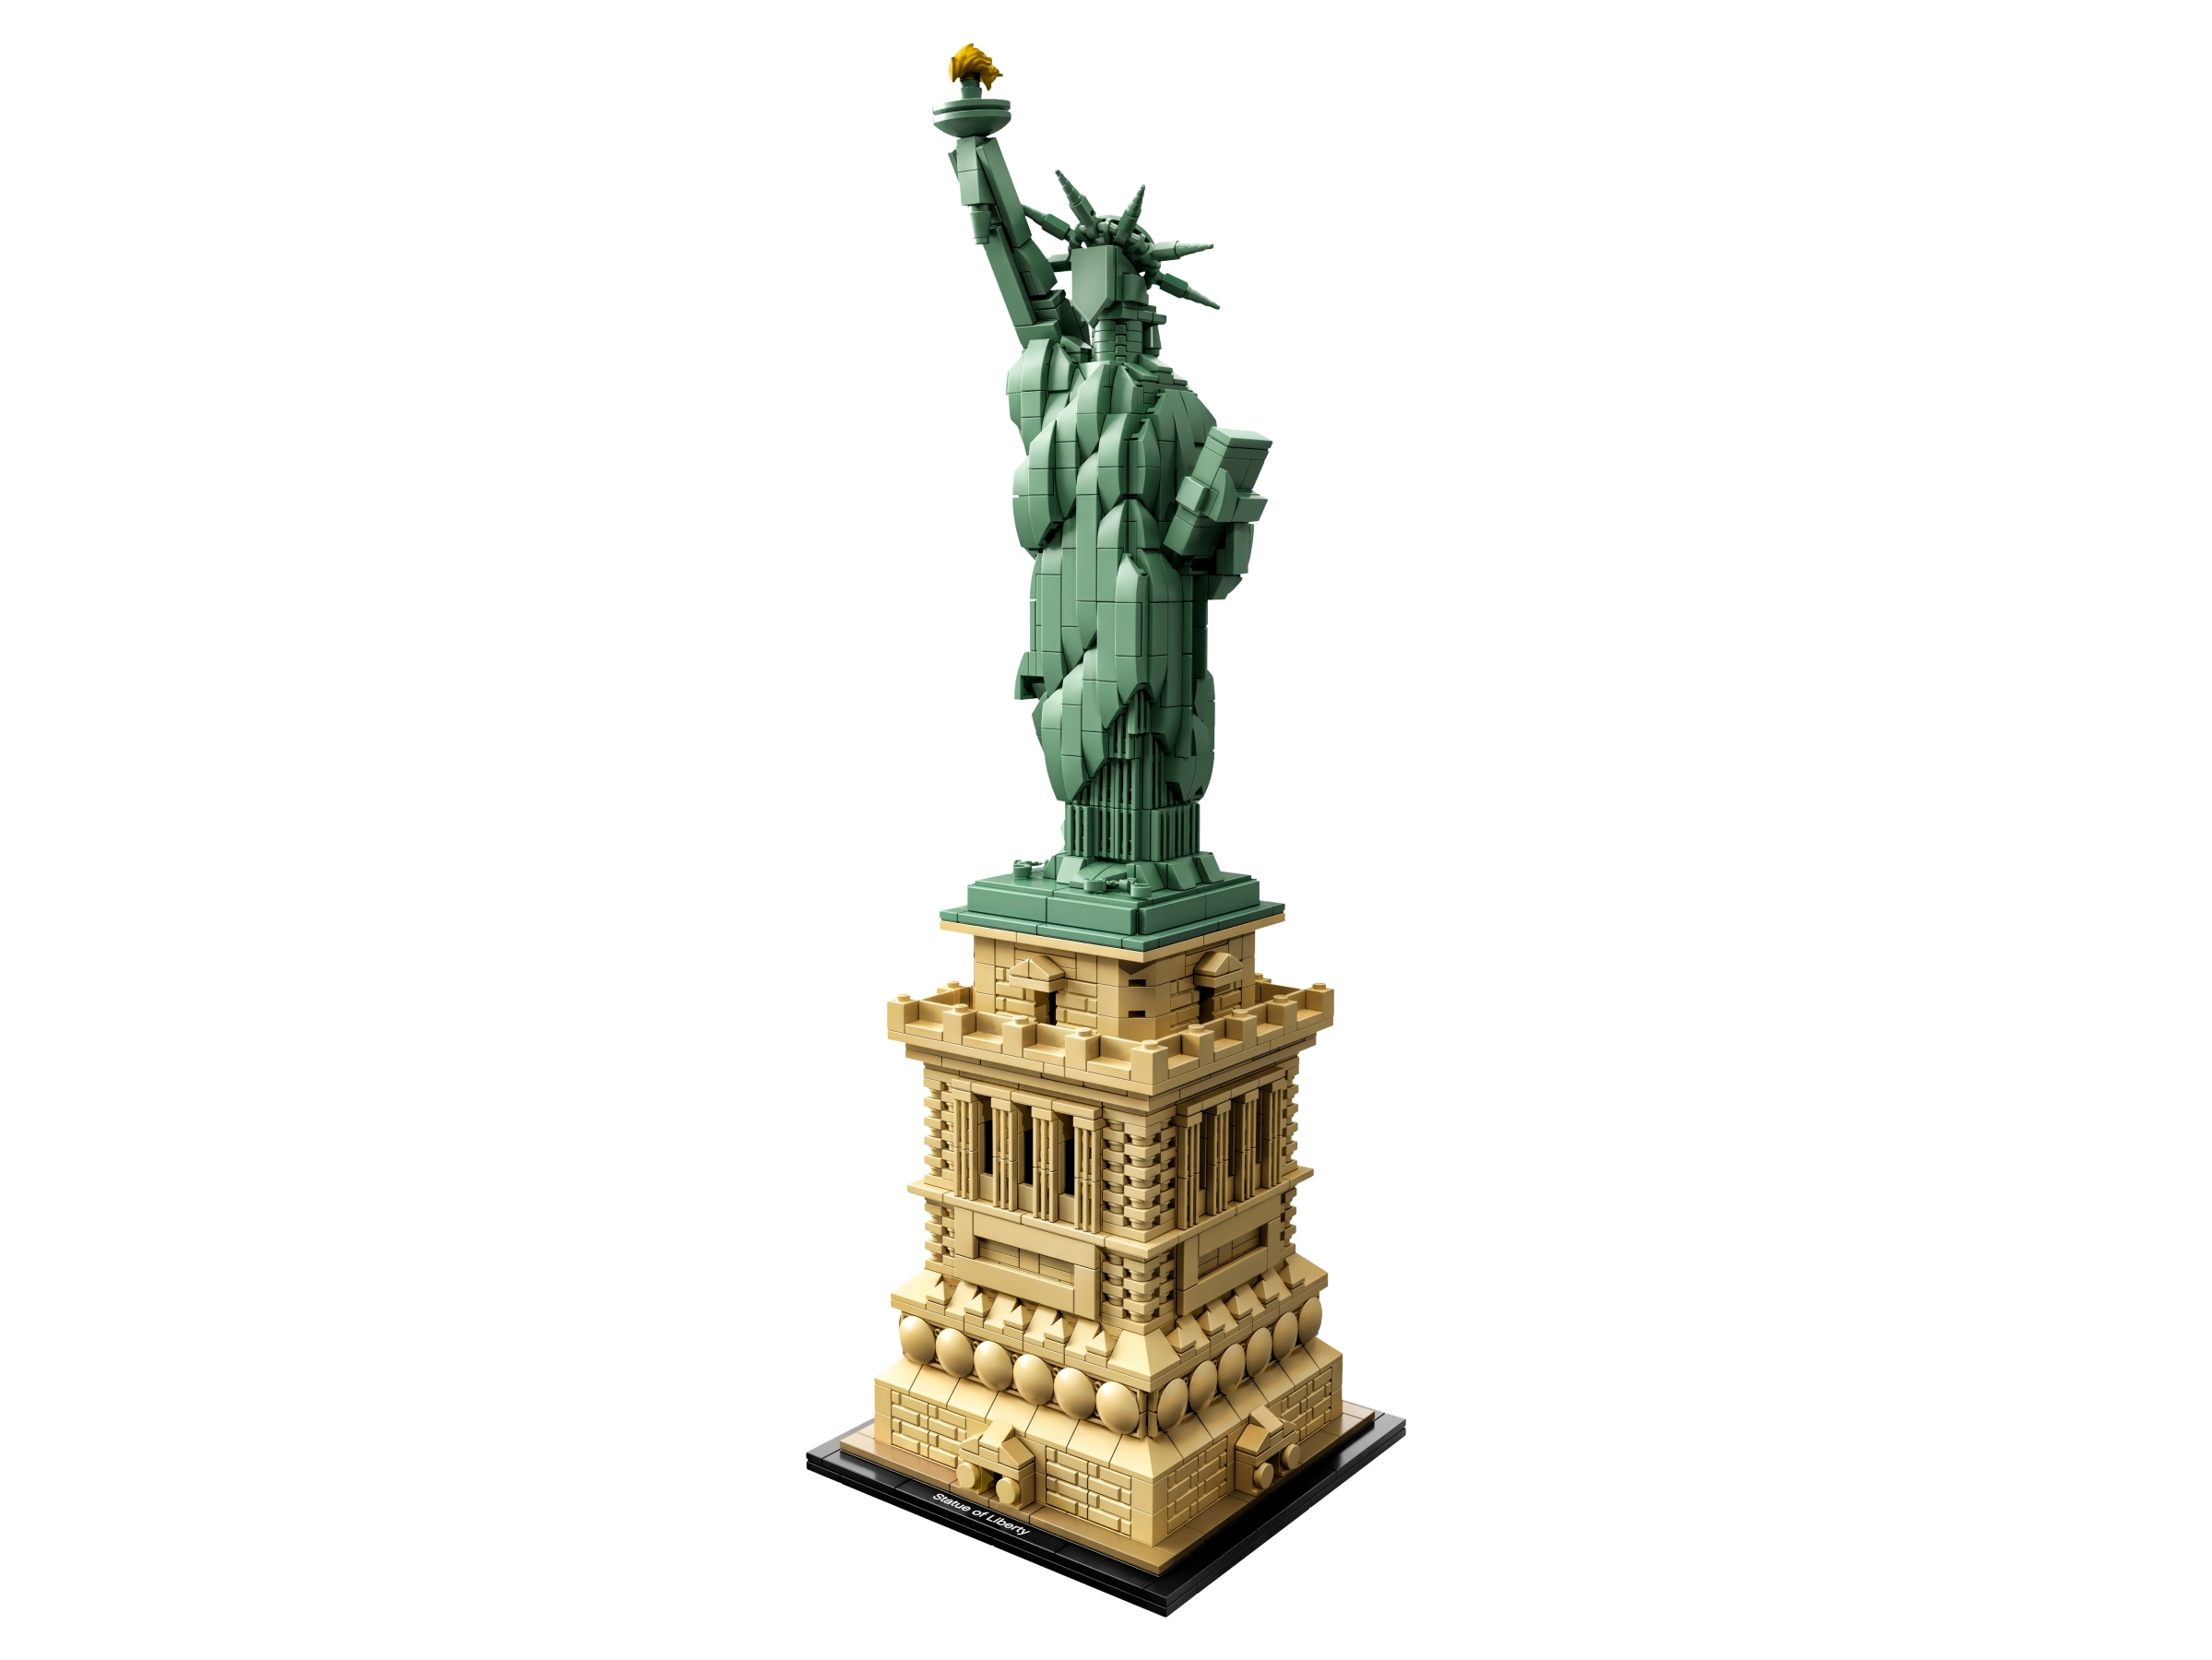 LEGO SERIES 6 LADY LIBERTY MINT CONDITION